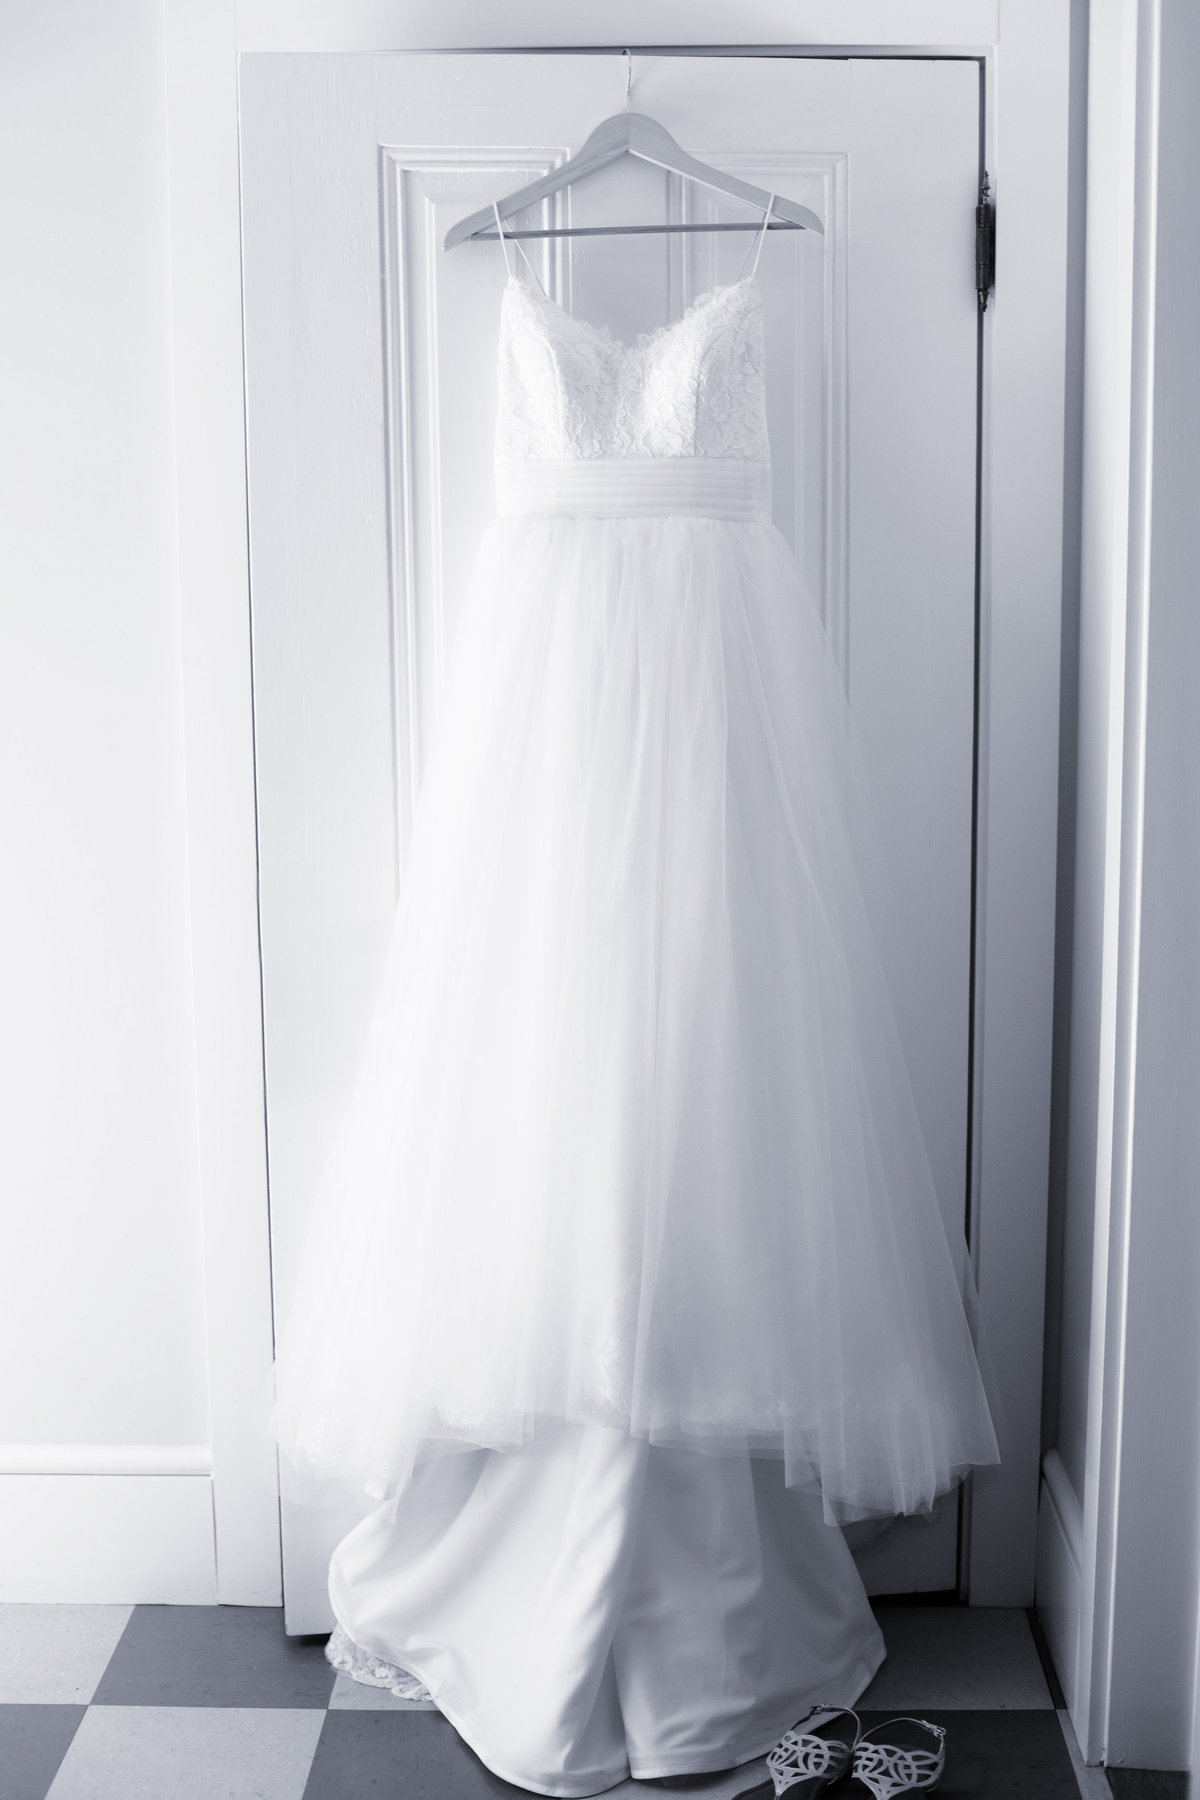 portrait of wedding dress, black and white wedding dress